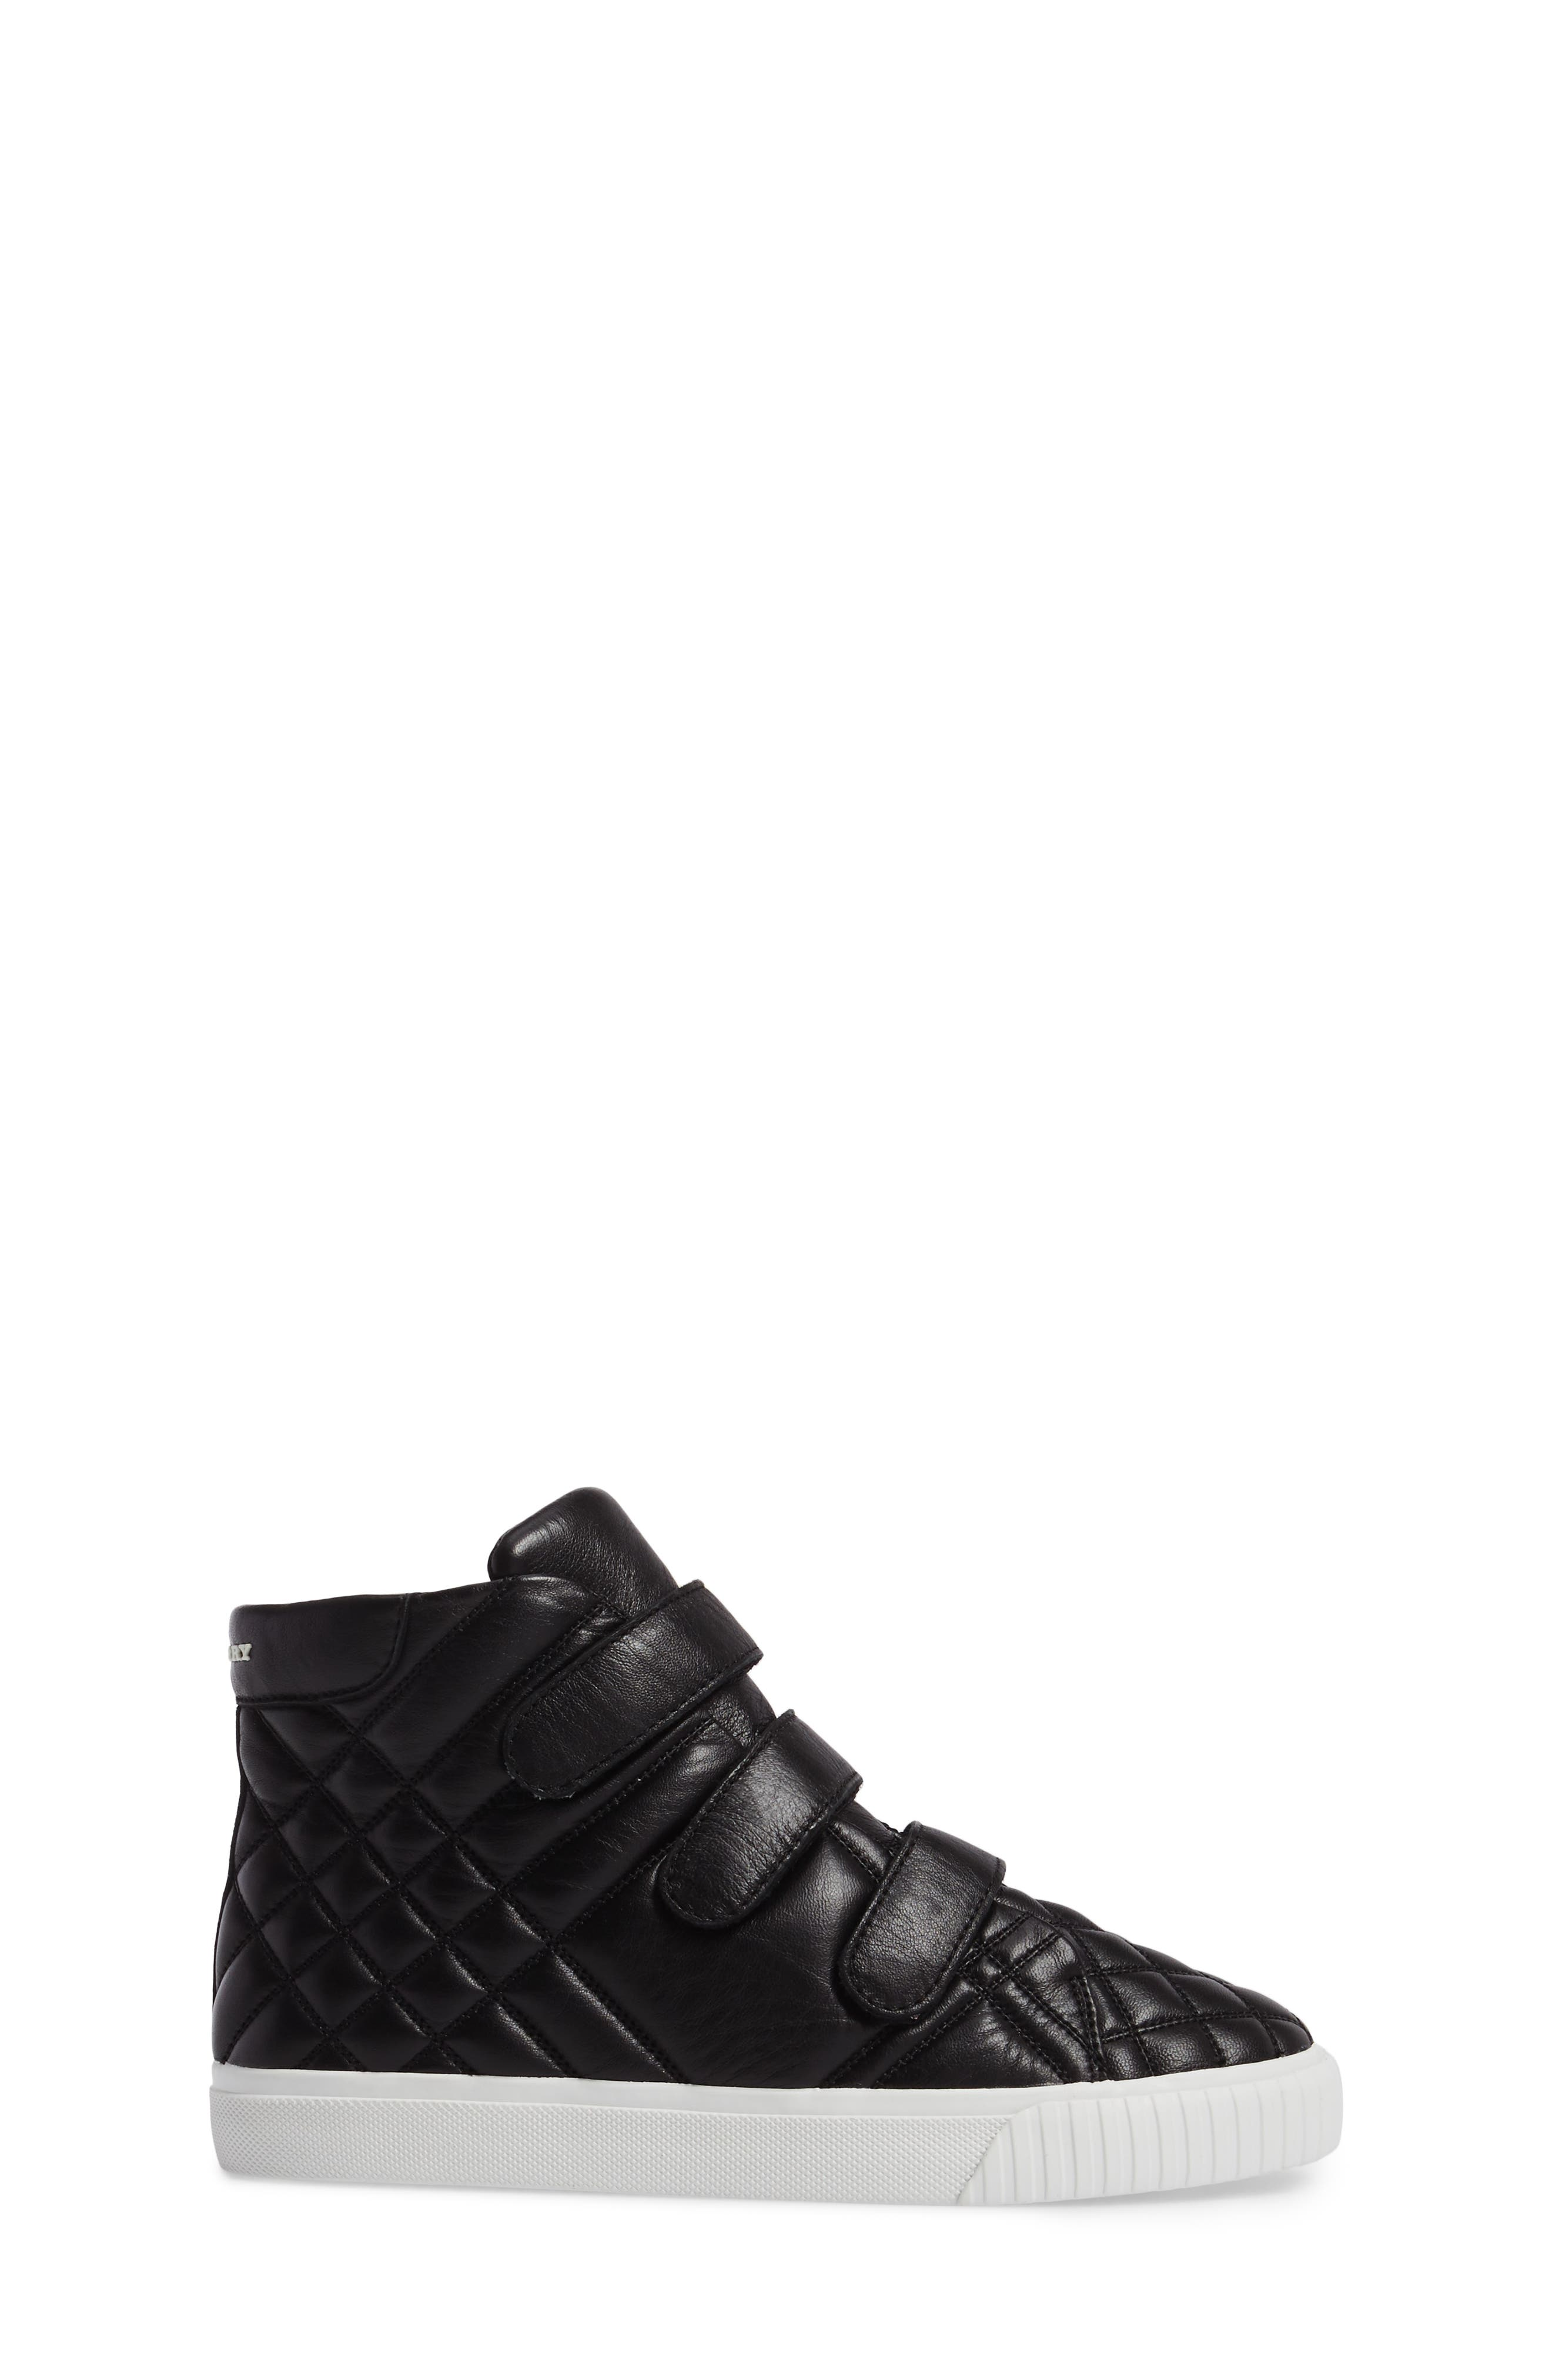 Sturrock Quilted High Top Sneaker,                             Alternate thumbnail 3, color,                             001